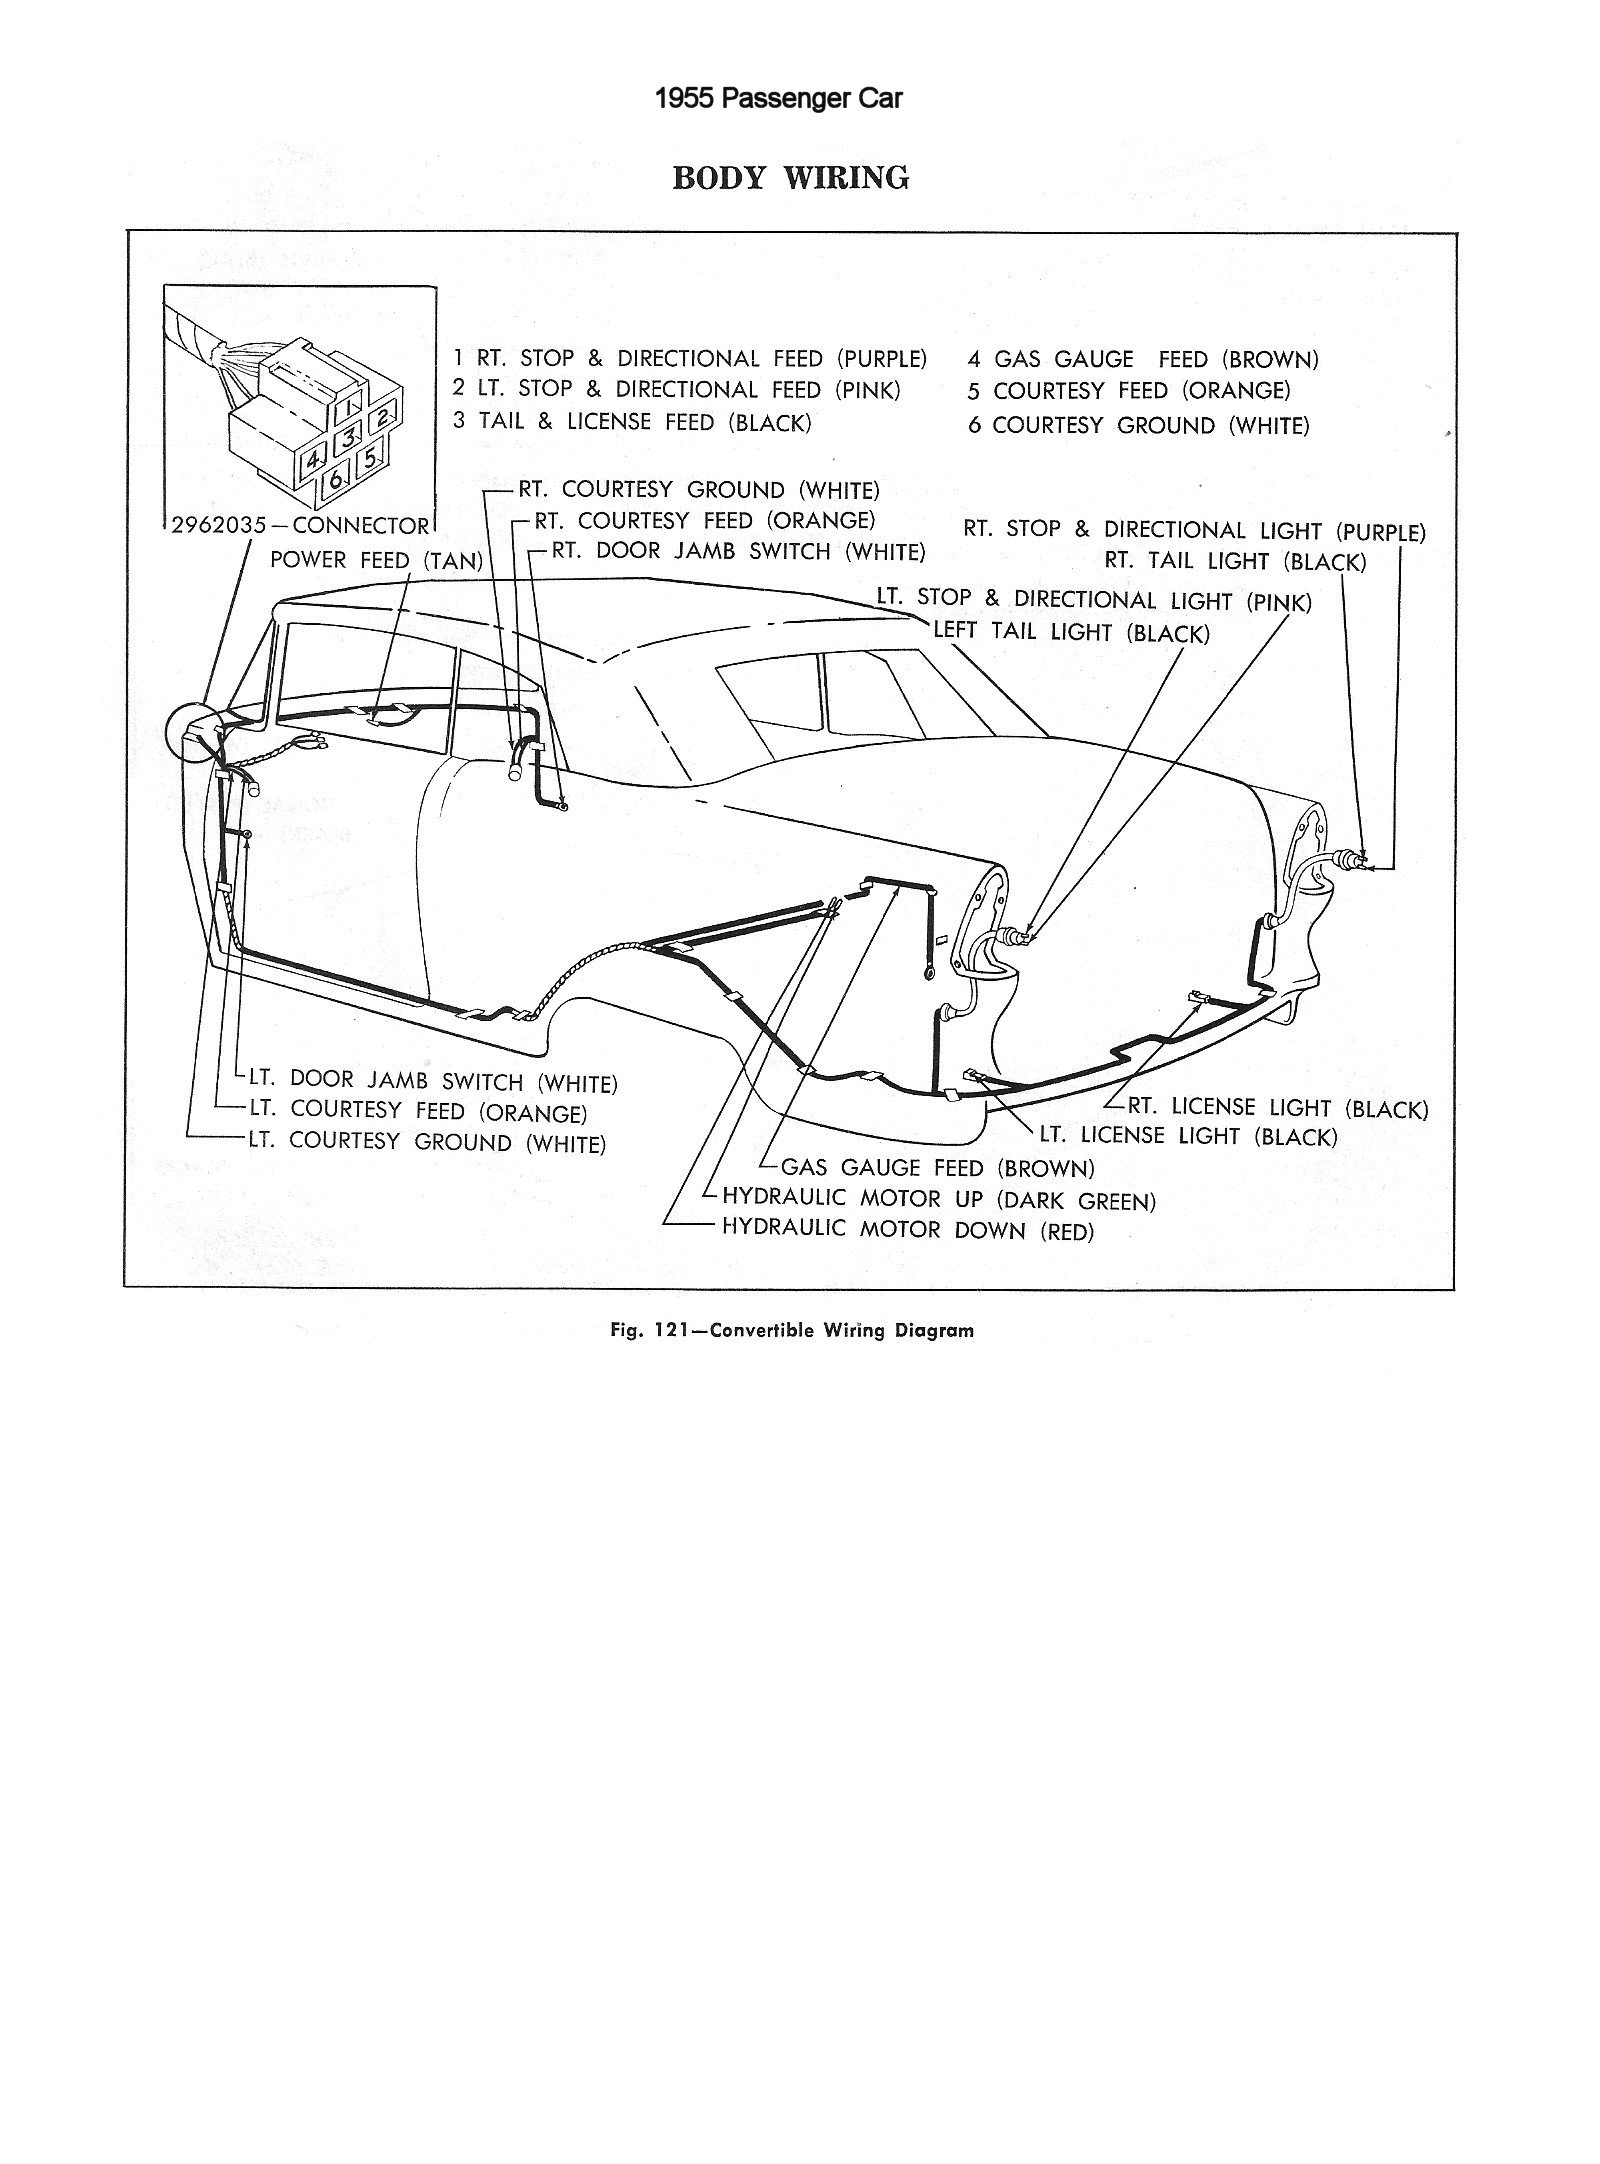 55 chevy color wiring diagram  u2013 trifive  1955 chevy 1956